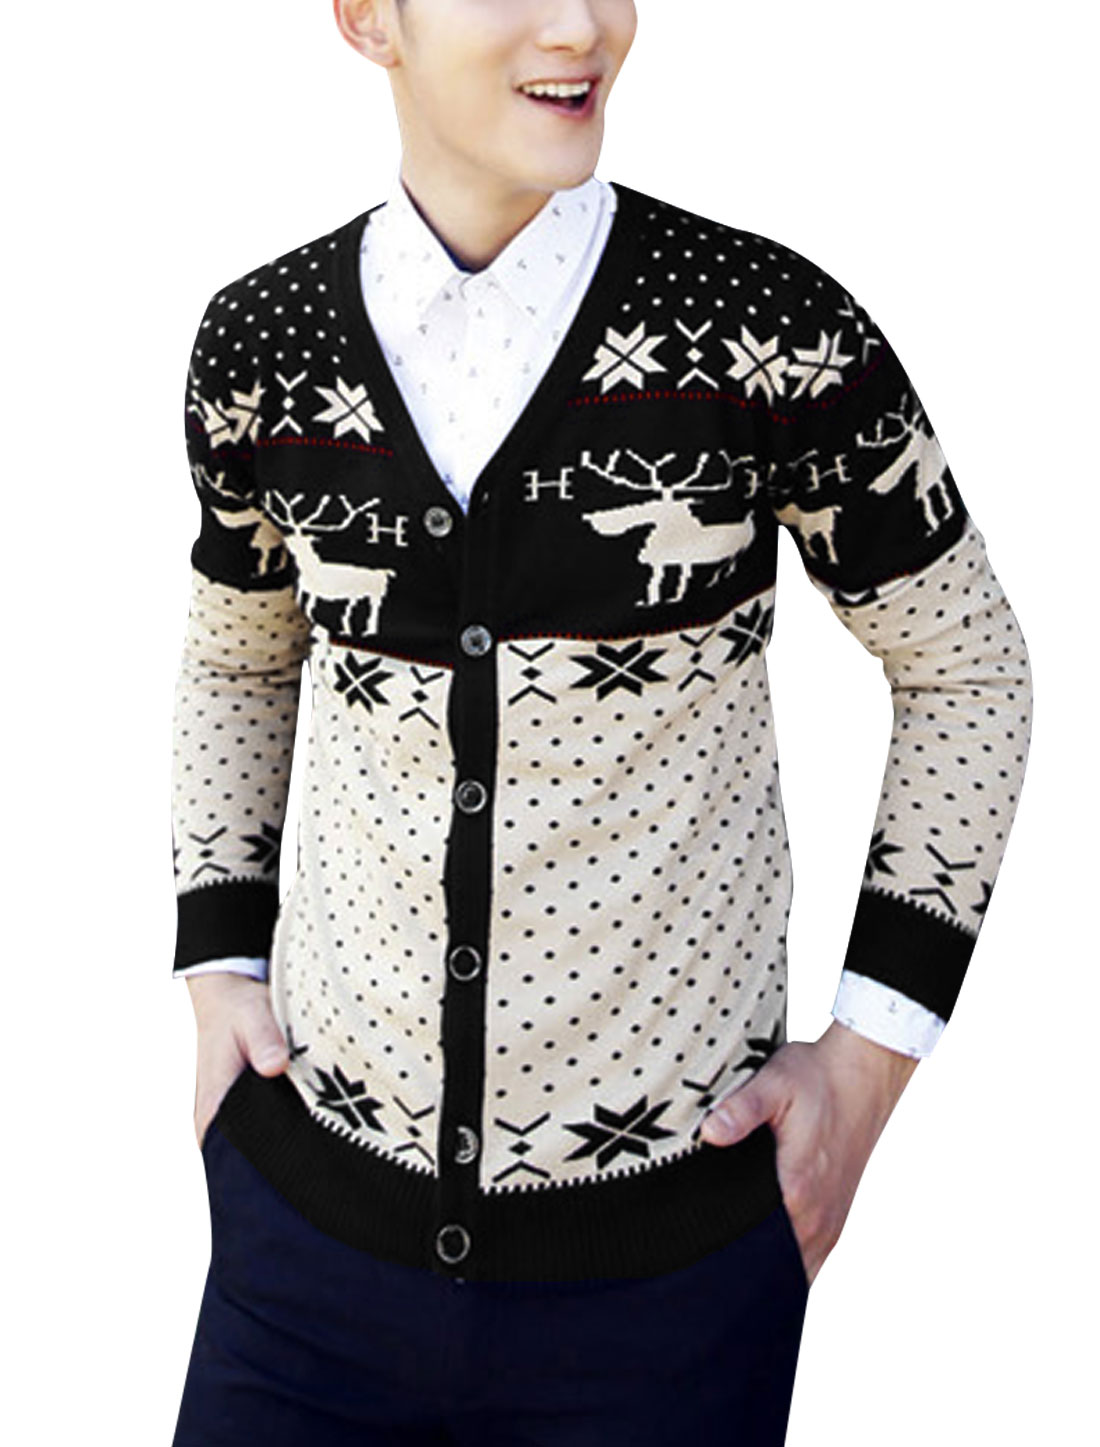 Cozy Fit Fashion Geometric Dots Deer Pattern Knit Cardigan for Men Black Beige S